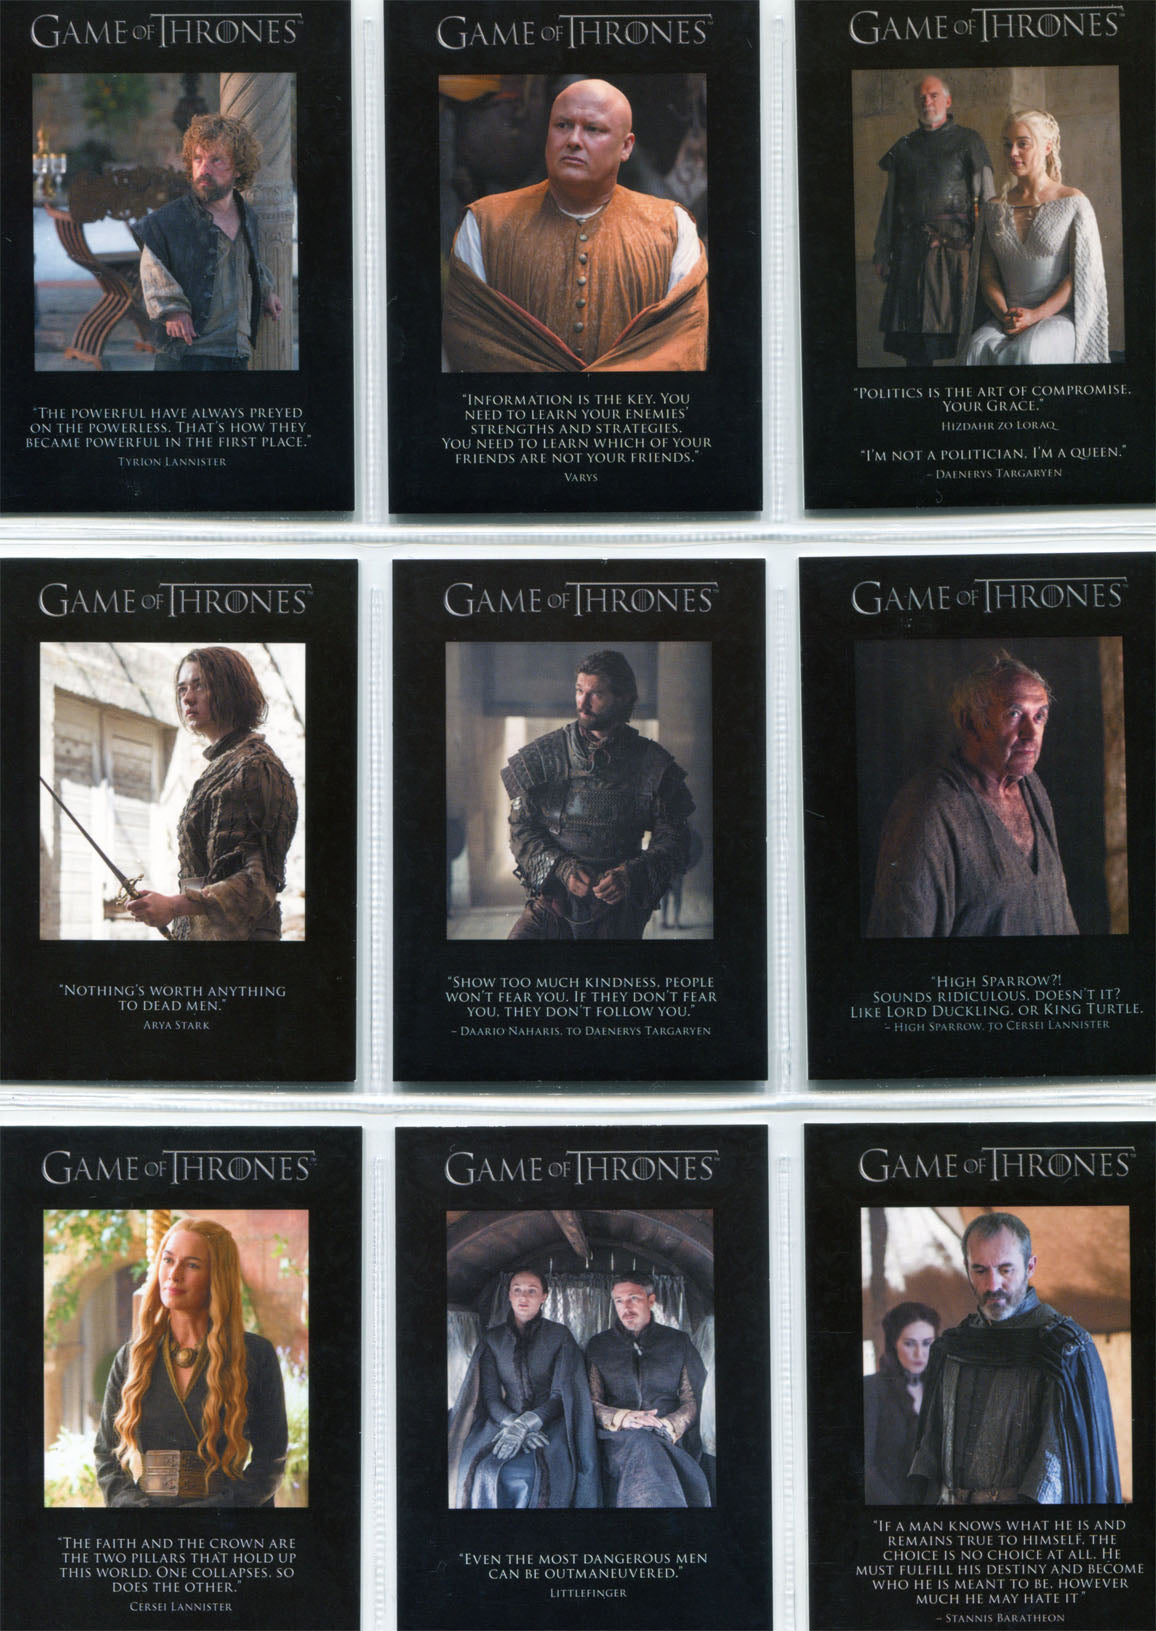 Game of Thrones Season 5 Quotable Complete 9 Chase Card Set Q41-Q49 | Digital Heroes